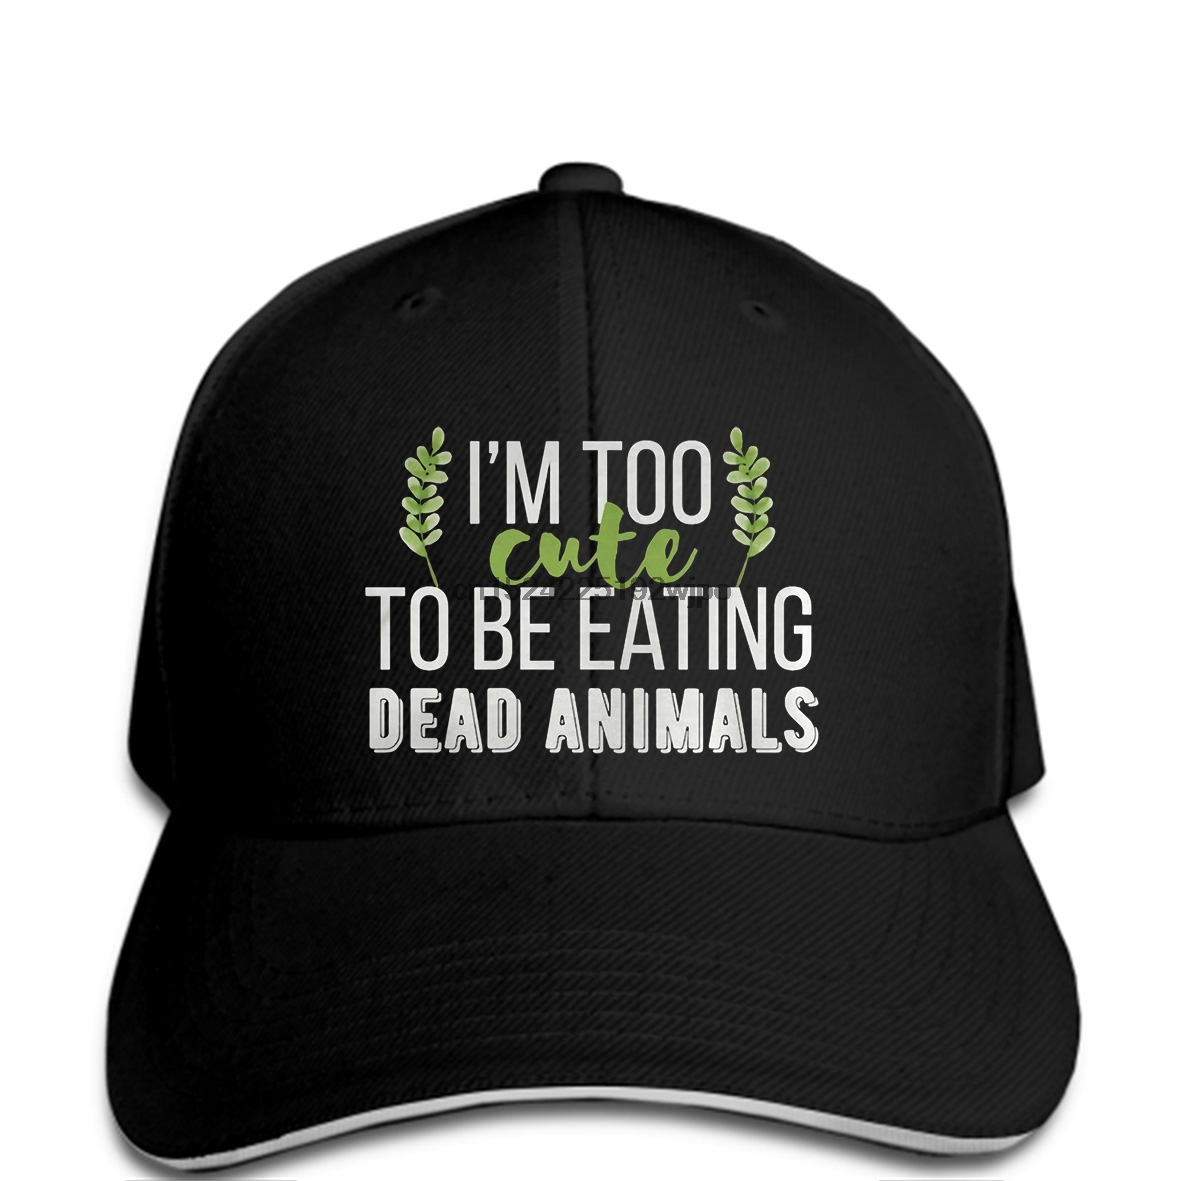 Us 99 Funny Baseball Cap Vegan Quotes Im Too Cute To Be Eating Dead Anim Cap Cap Men In Mens Baseball Caps From Apparel Accessories On Aliexpress